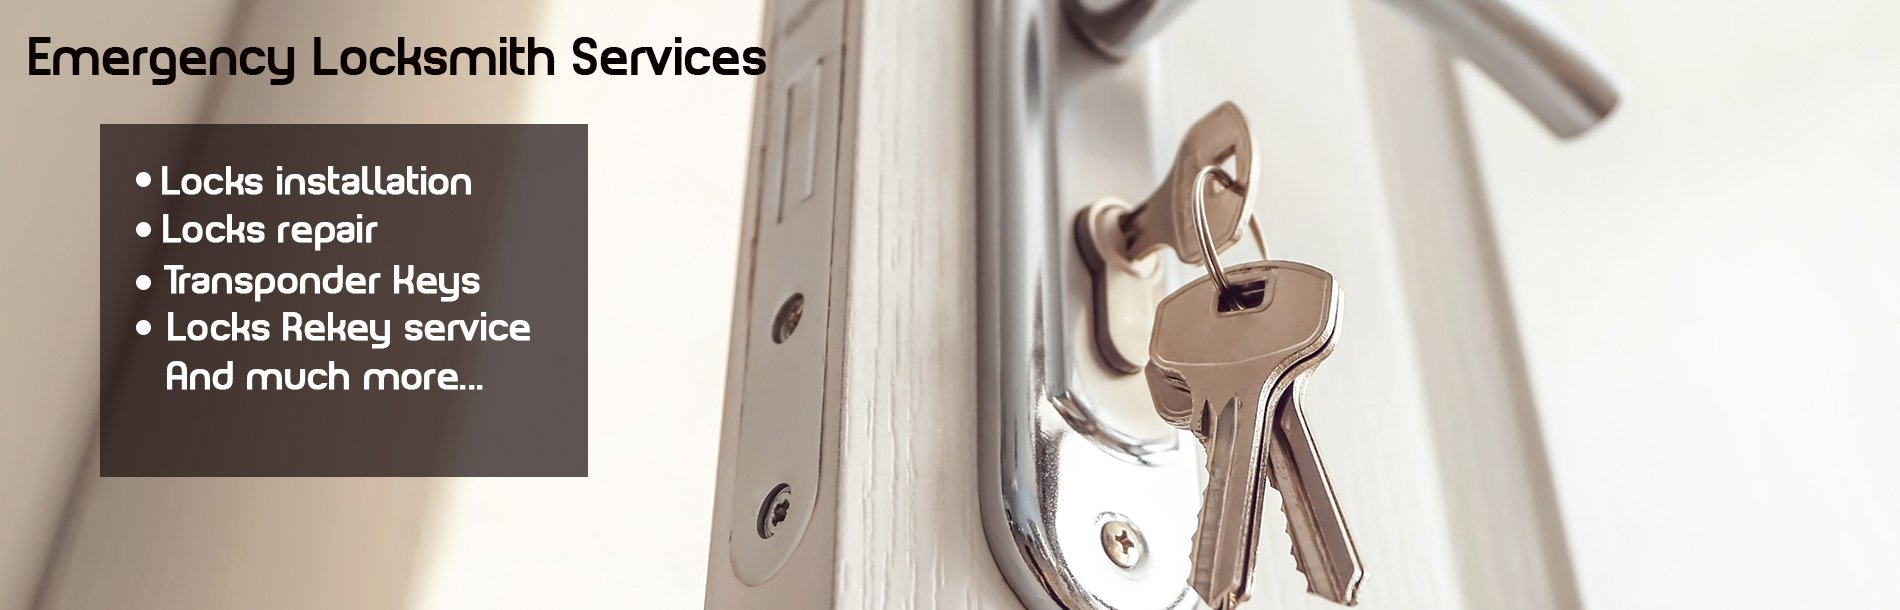 Seattle Emerald Locksmith Seattle, WA 206-408-8180